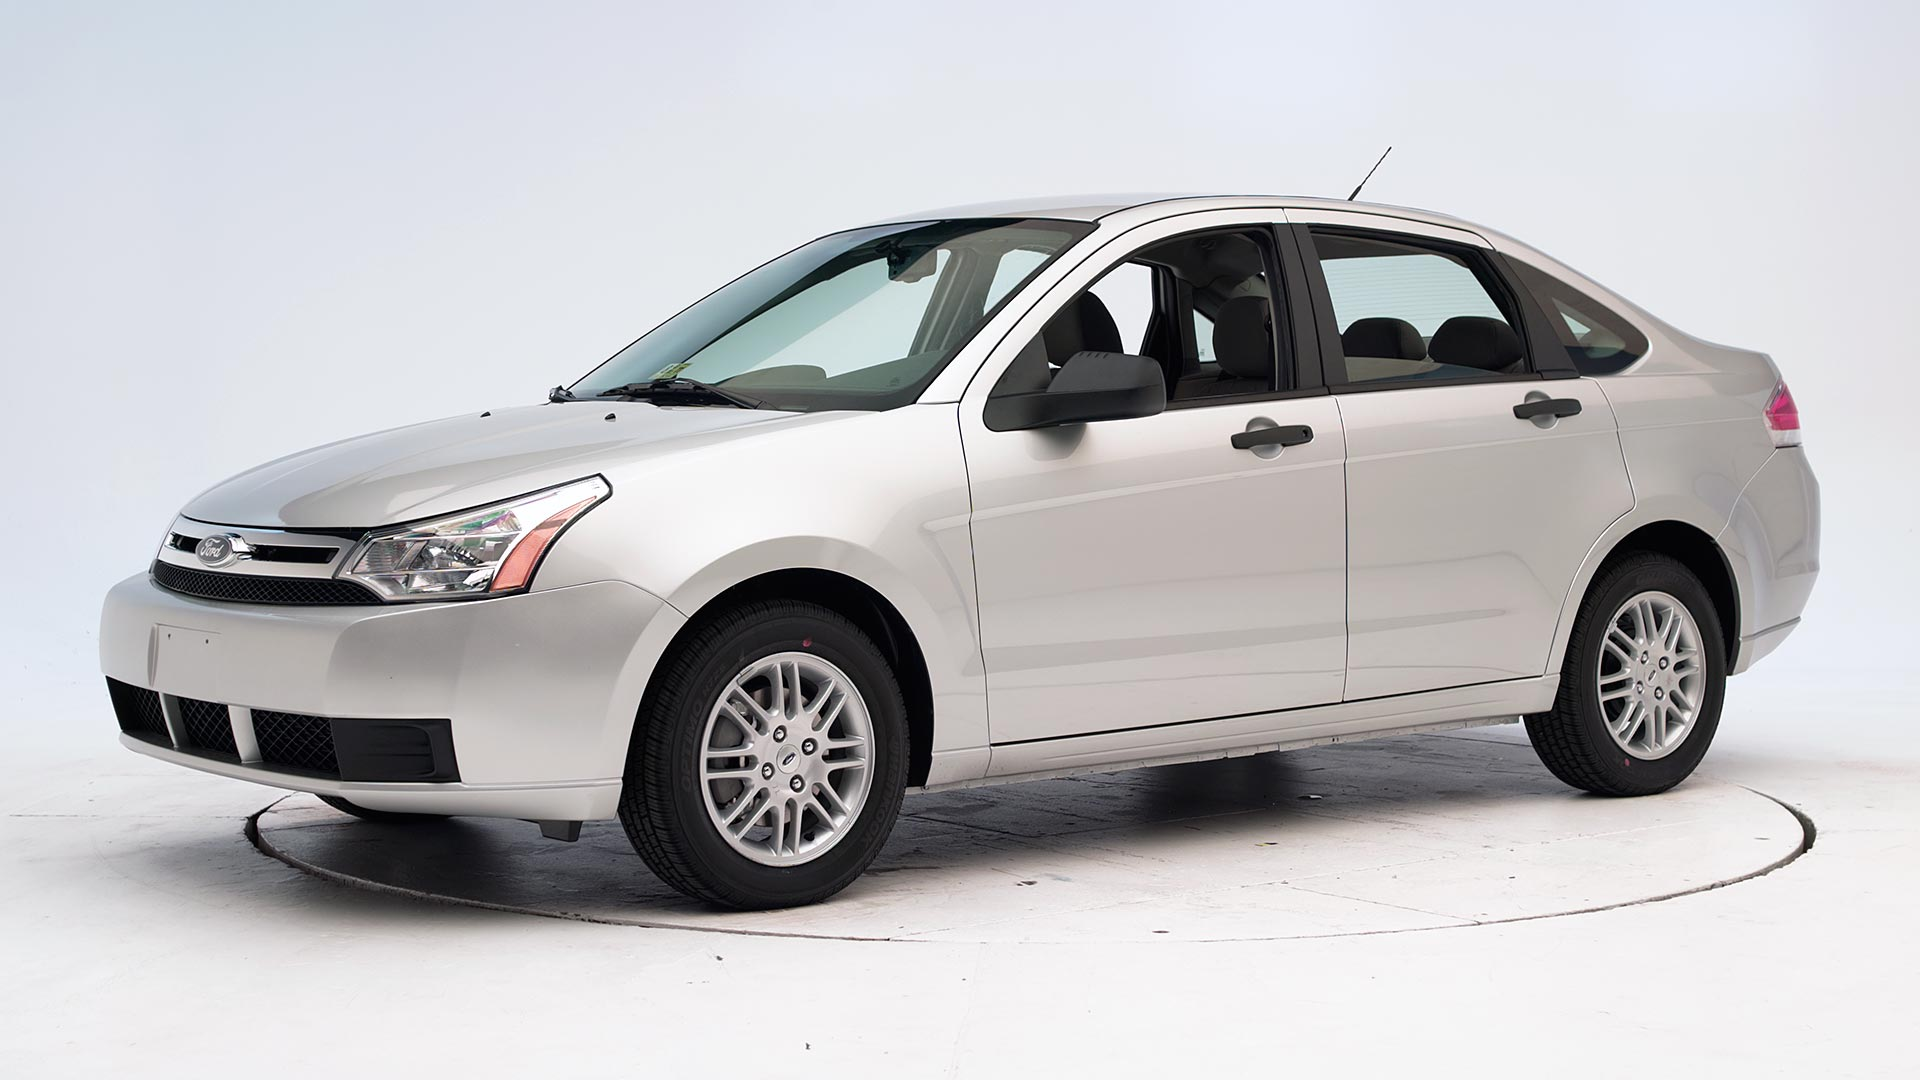 2011 Ford Focus 4-door sedan